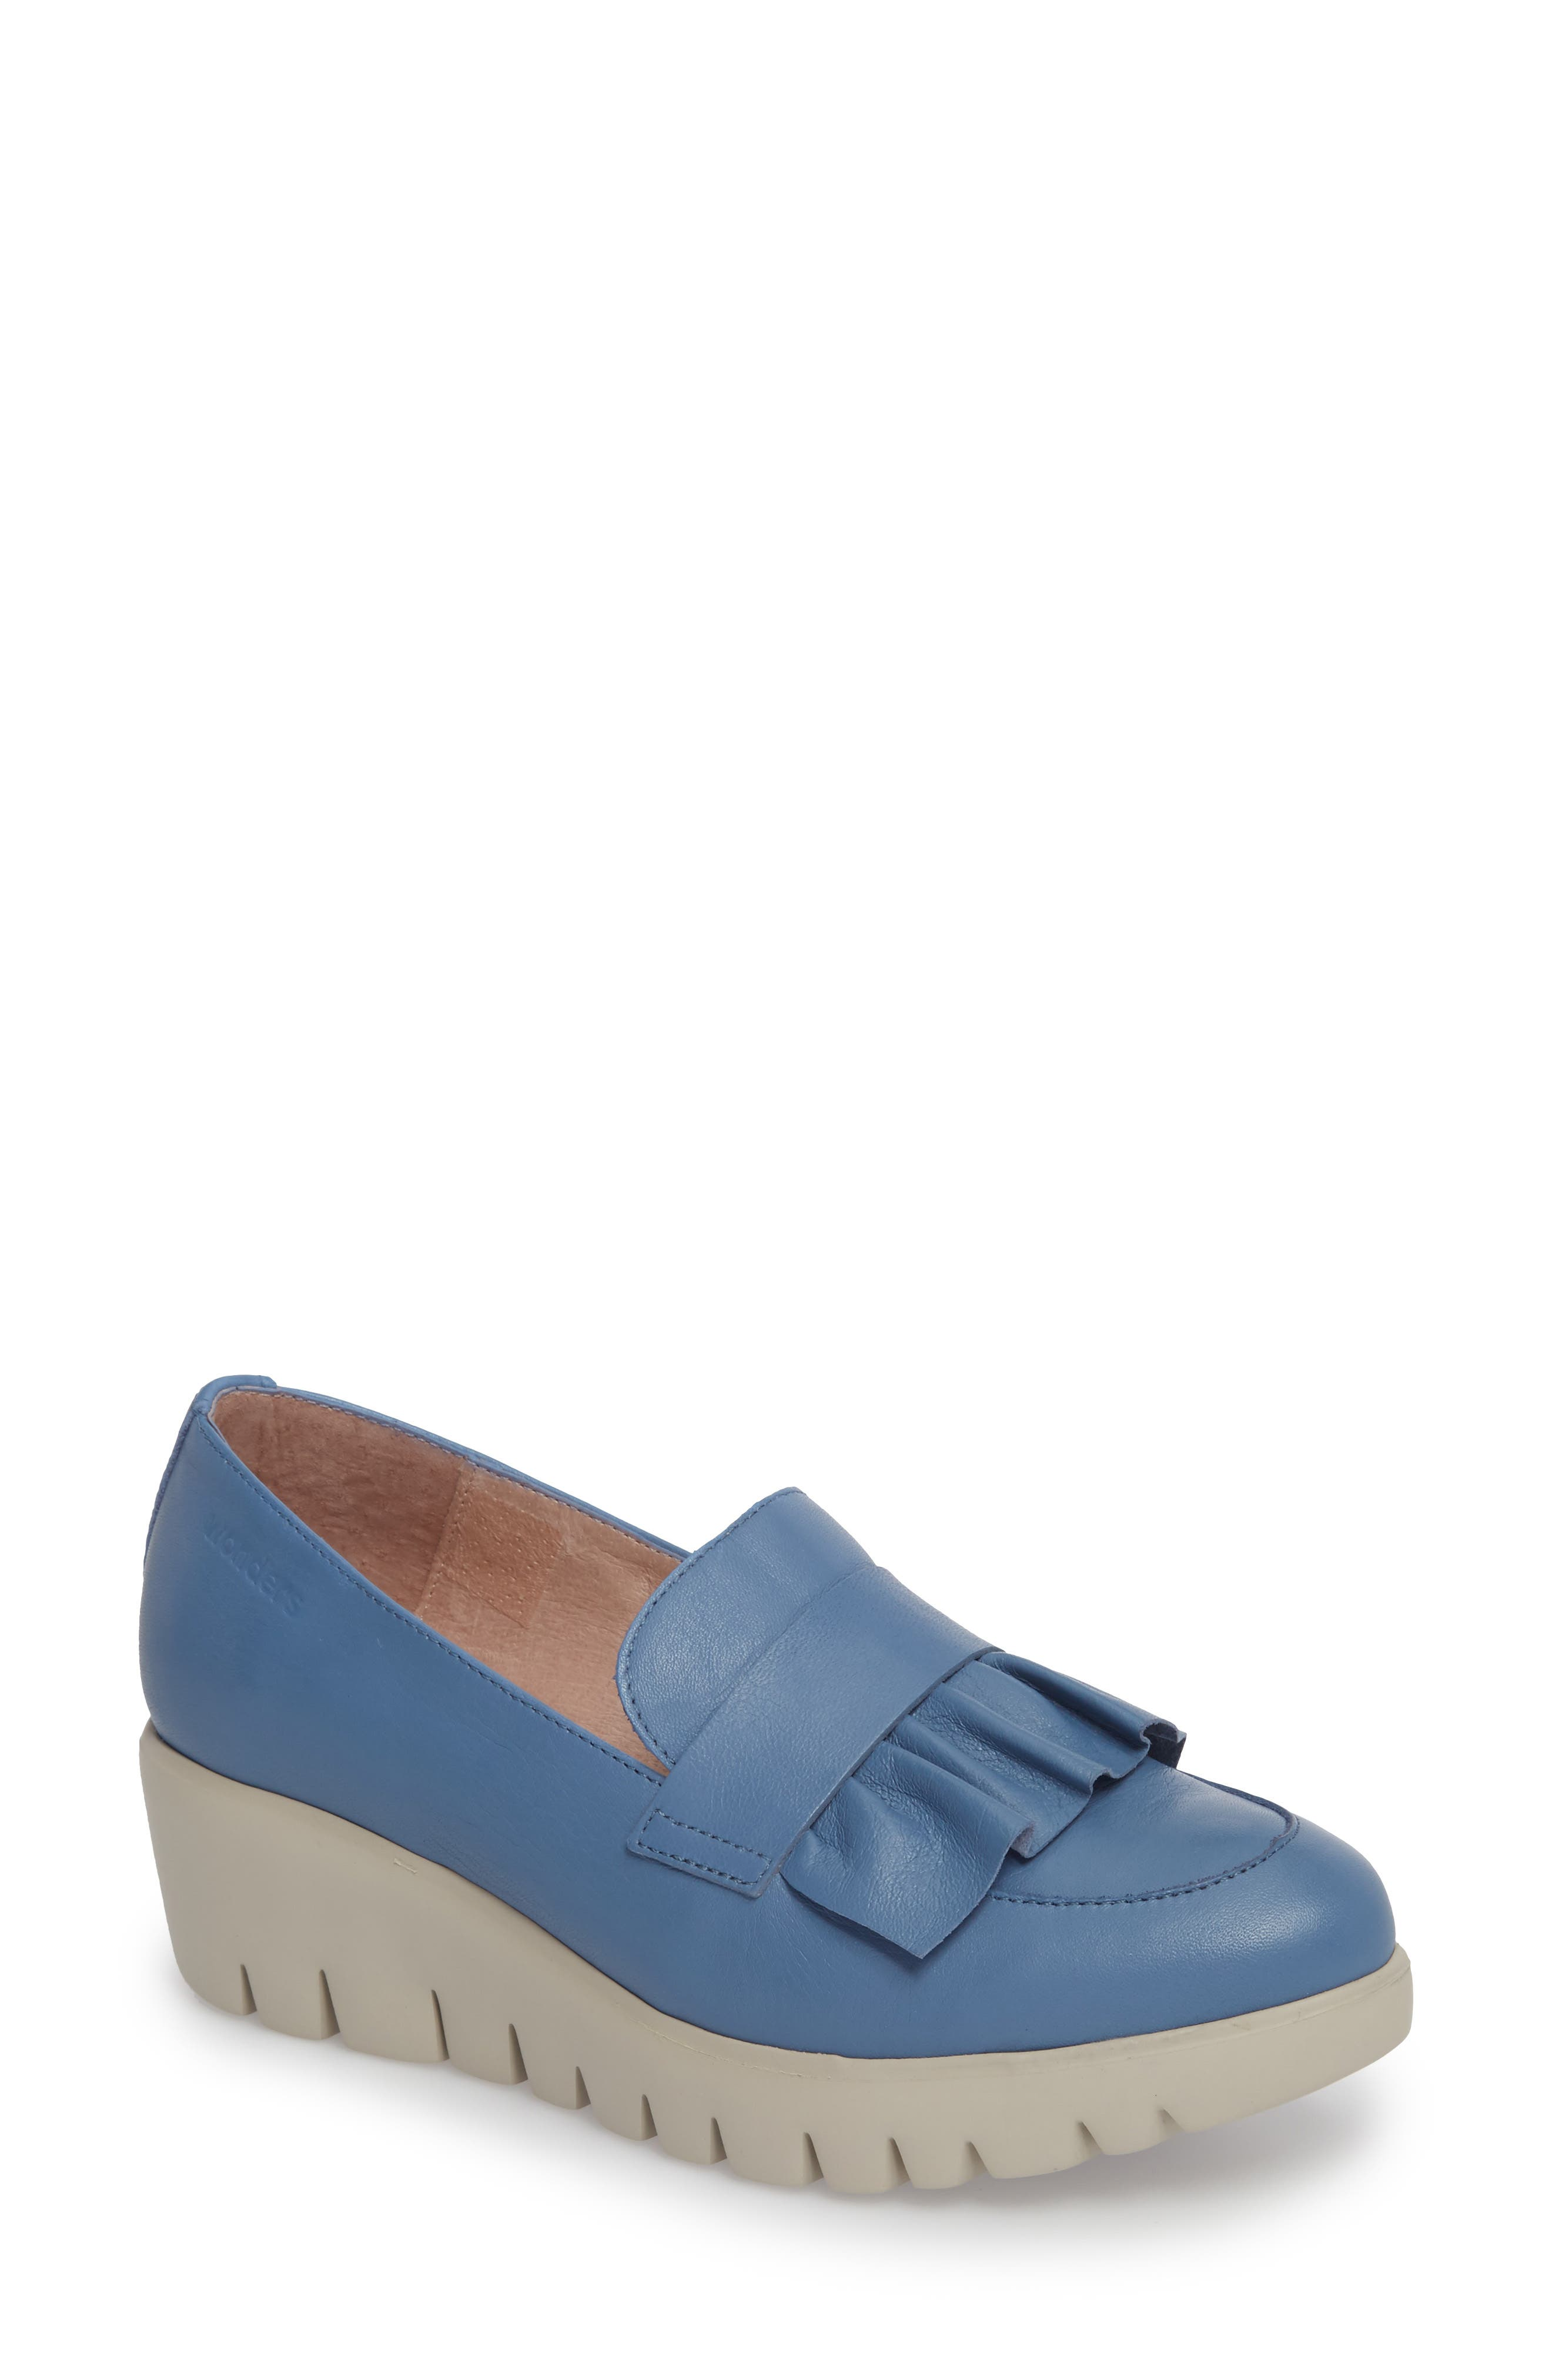 Loafer Wedge,                             Main thumbnail 1, color,                             Jeans Leather